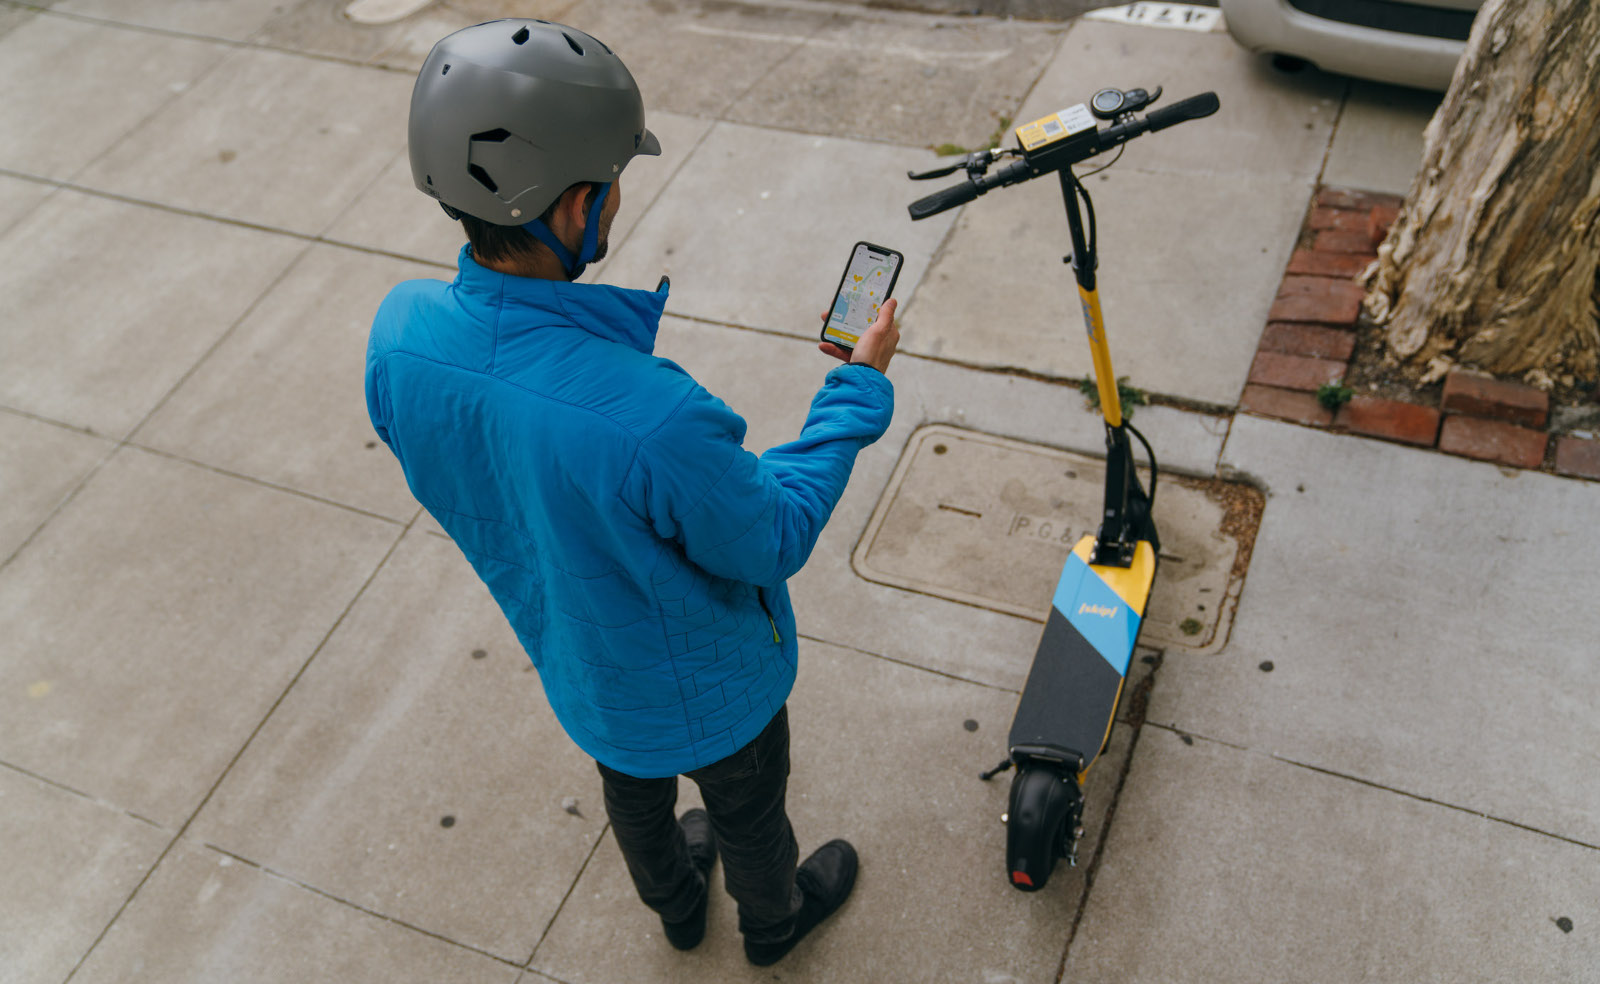 Boosted Boards founders launch a scooter-sharing service in DC